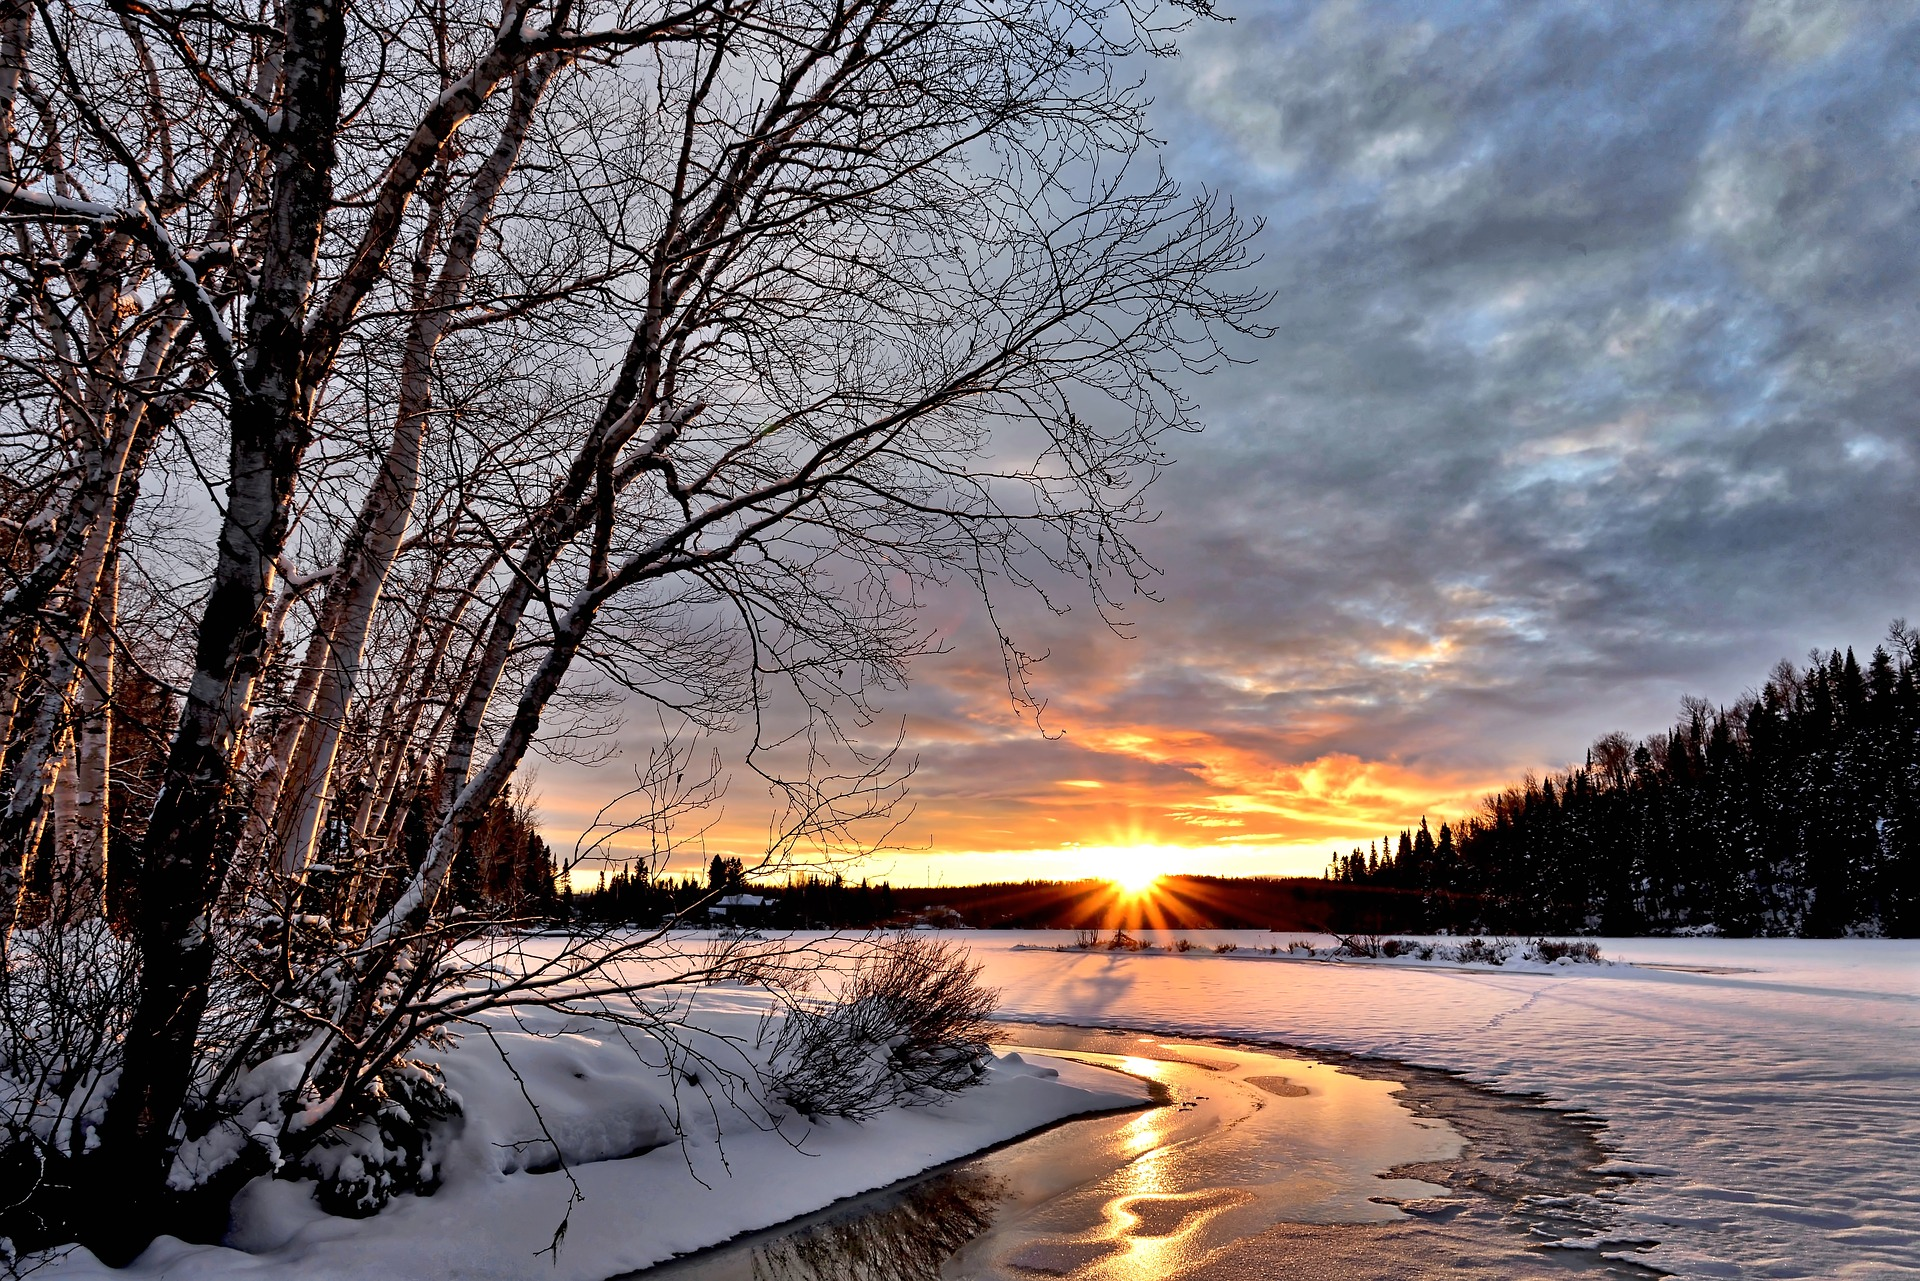 winter-landscape-2995987_1920 (1)